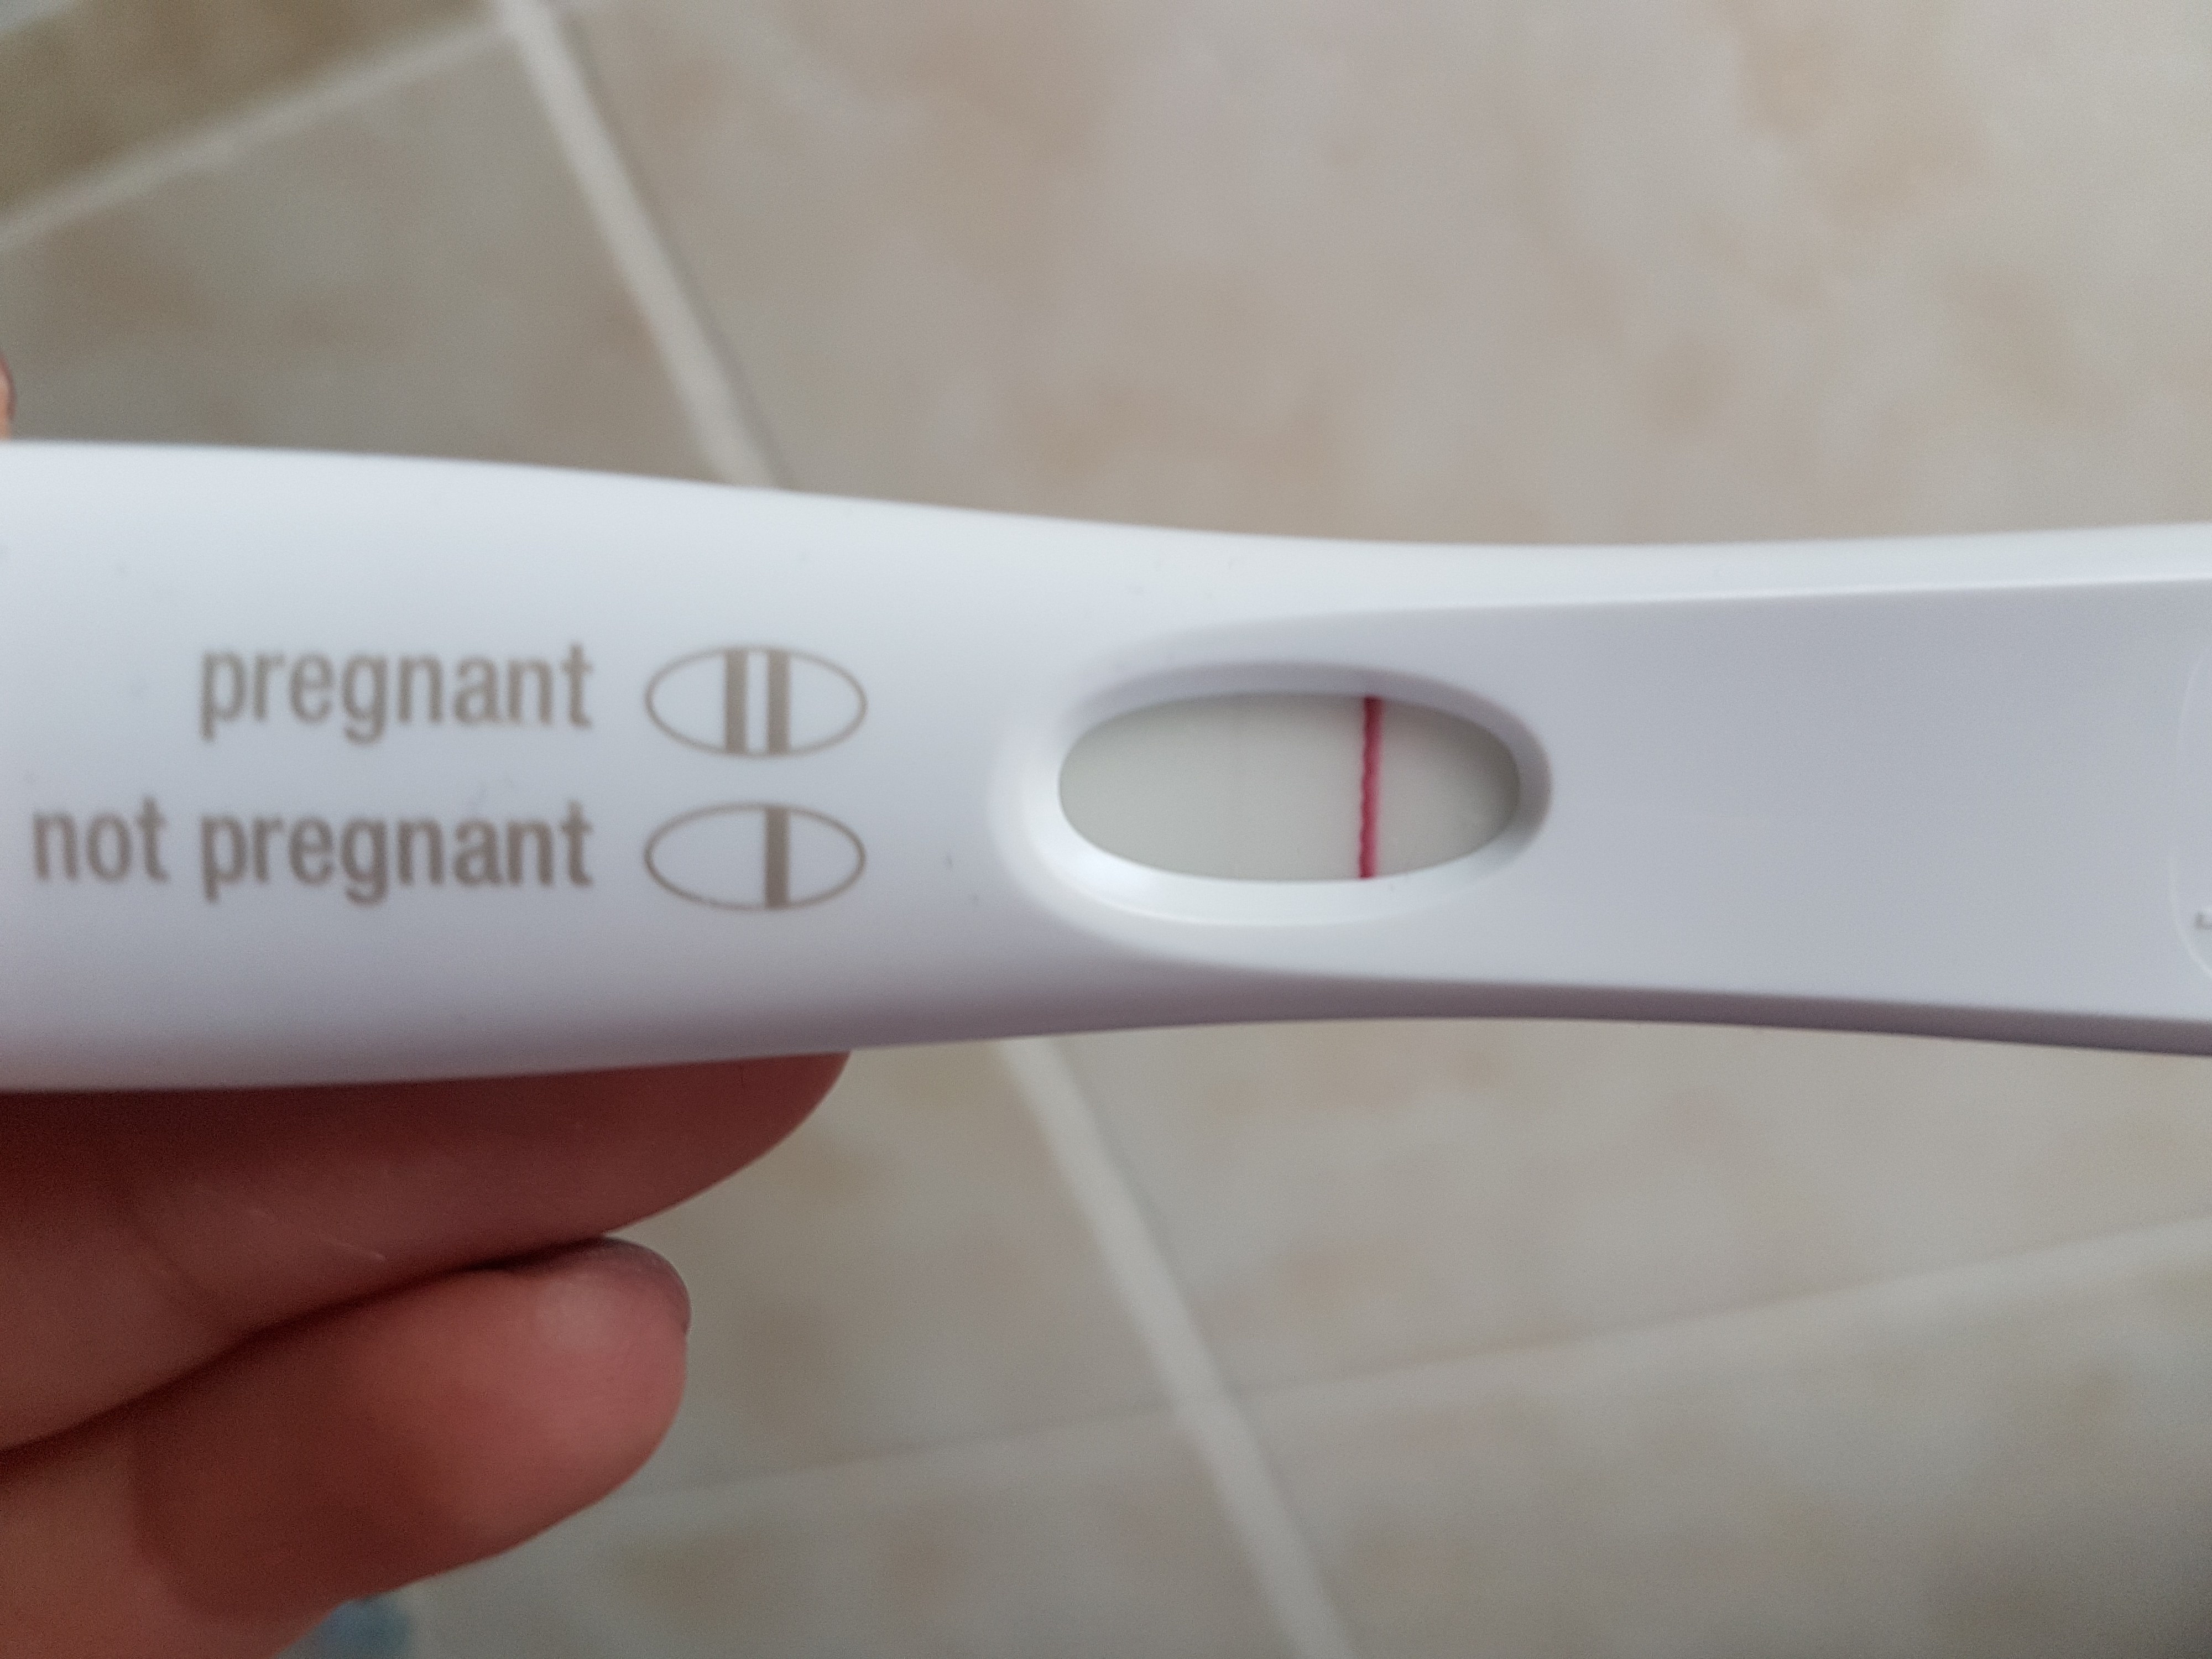 Classifying pregnancy test results - Towards Data Science